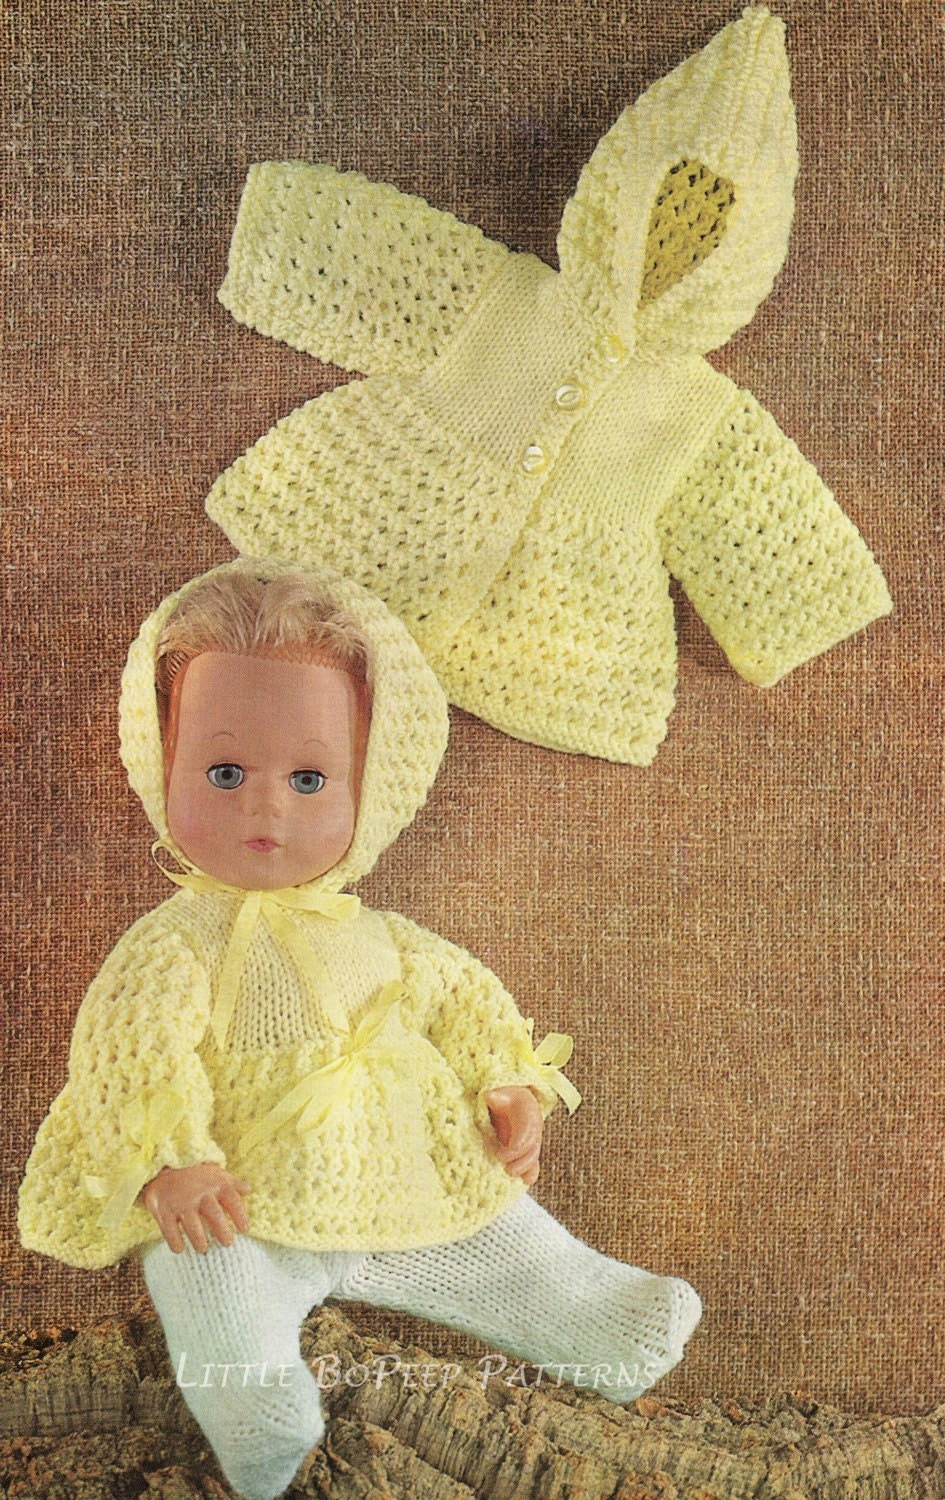 Vintage 14 inch Dolls clothes knitting pattern DOWNLOAD